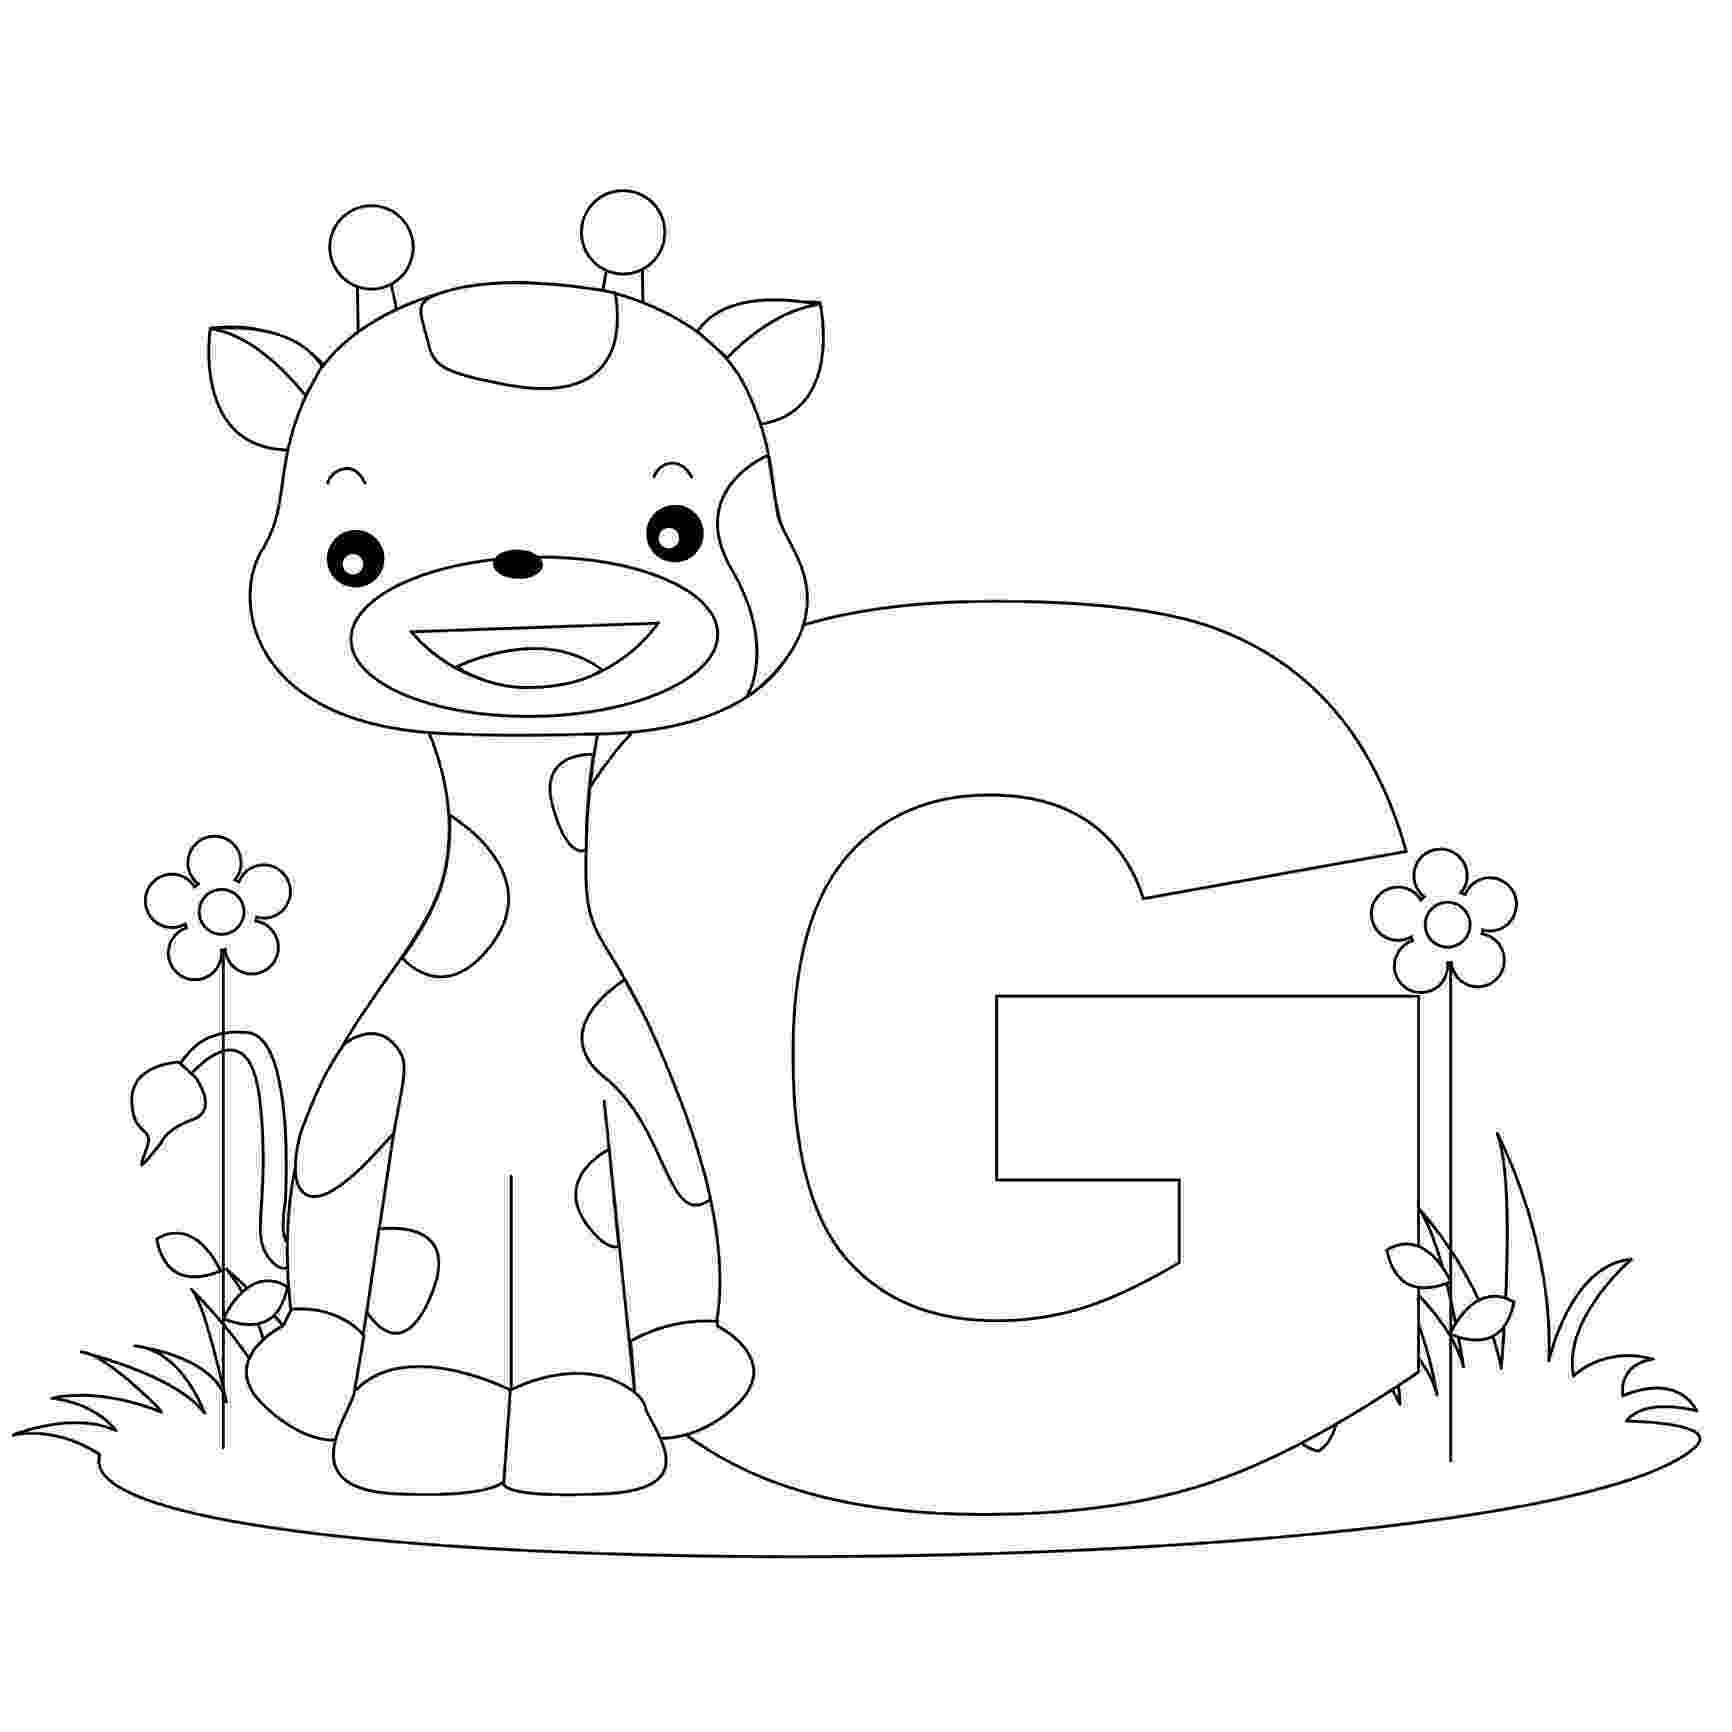 free alphabet coloring pages free printable alphabet coloring pages for kids best coloring alphabet pages free